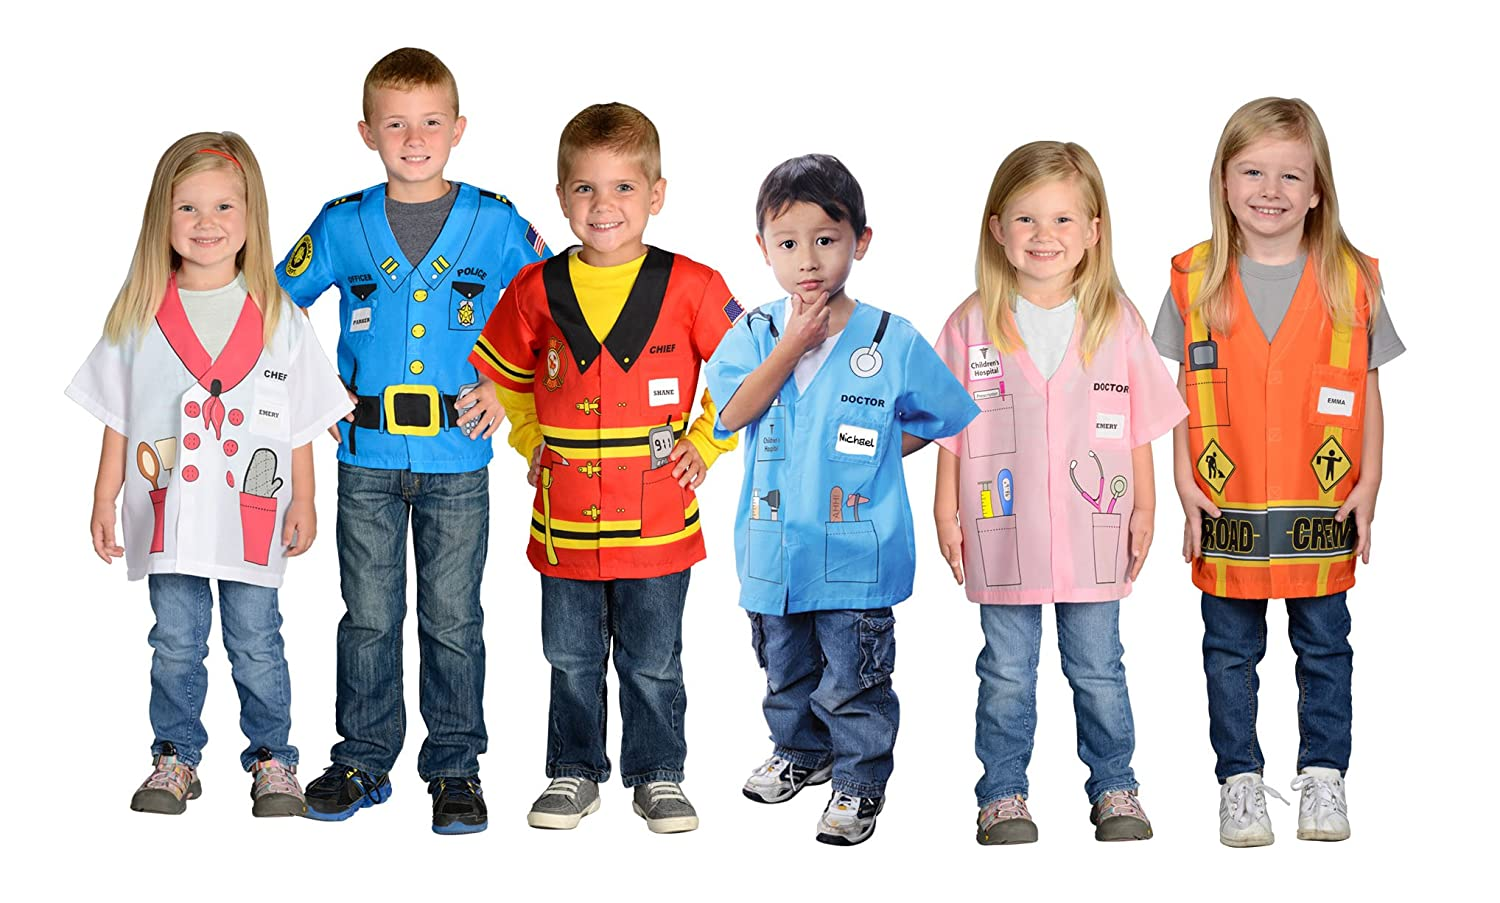 Career Day For Kids Sports: Gifts For 3 Year Olds